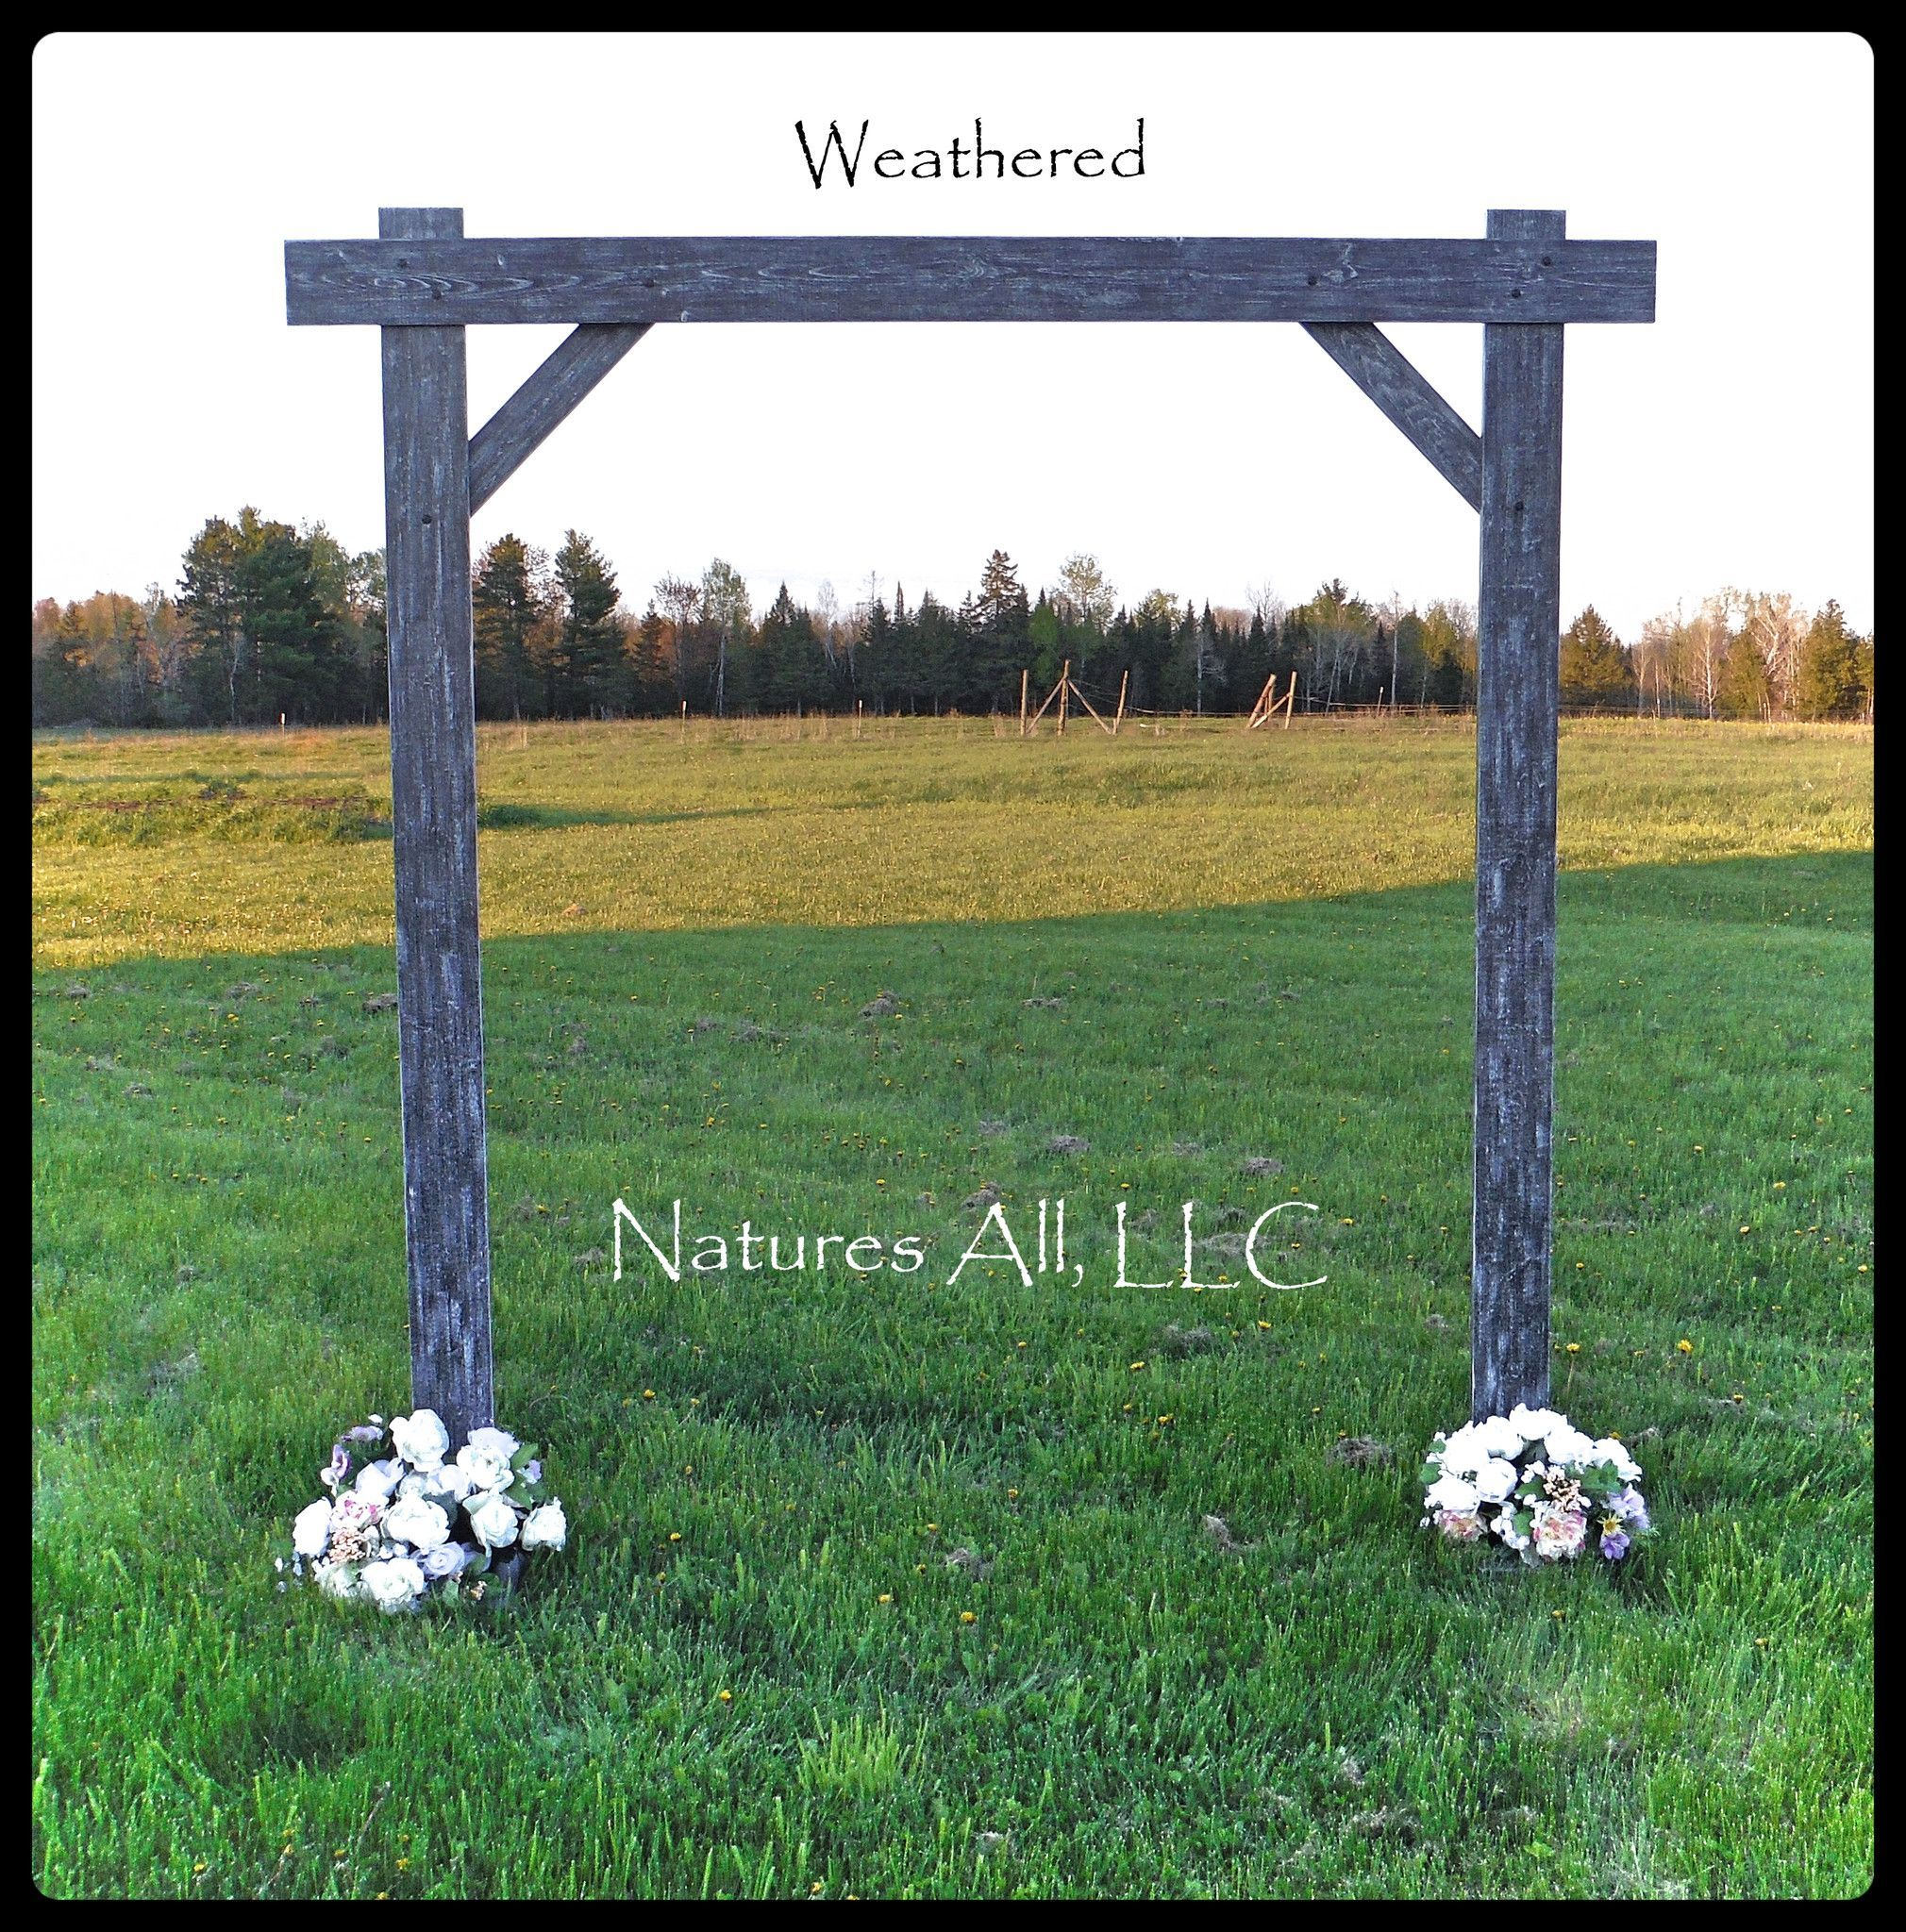 Rustic Country Wedding Arch Compete Kit For Indoor Or Outdoor Weddings Weathered Gray